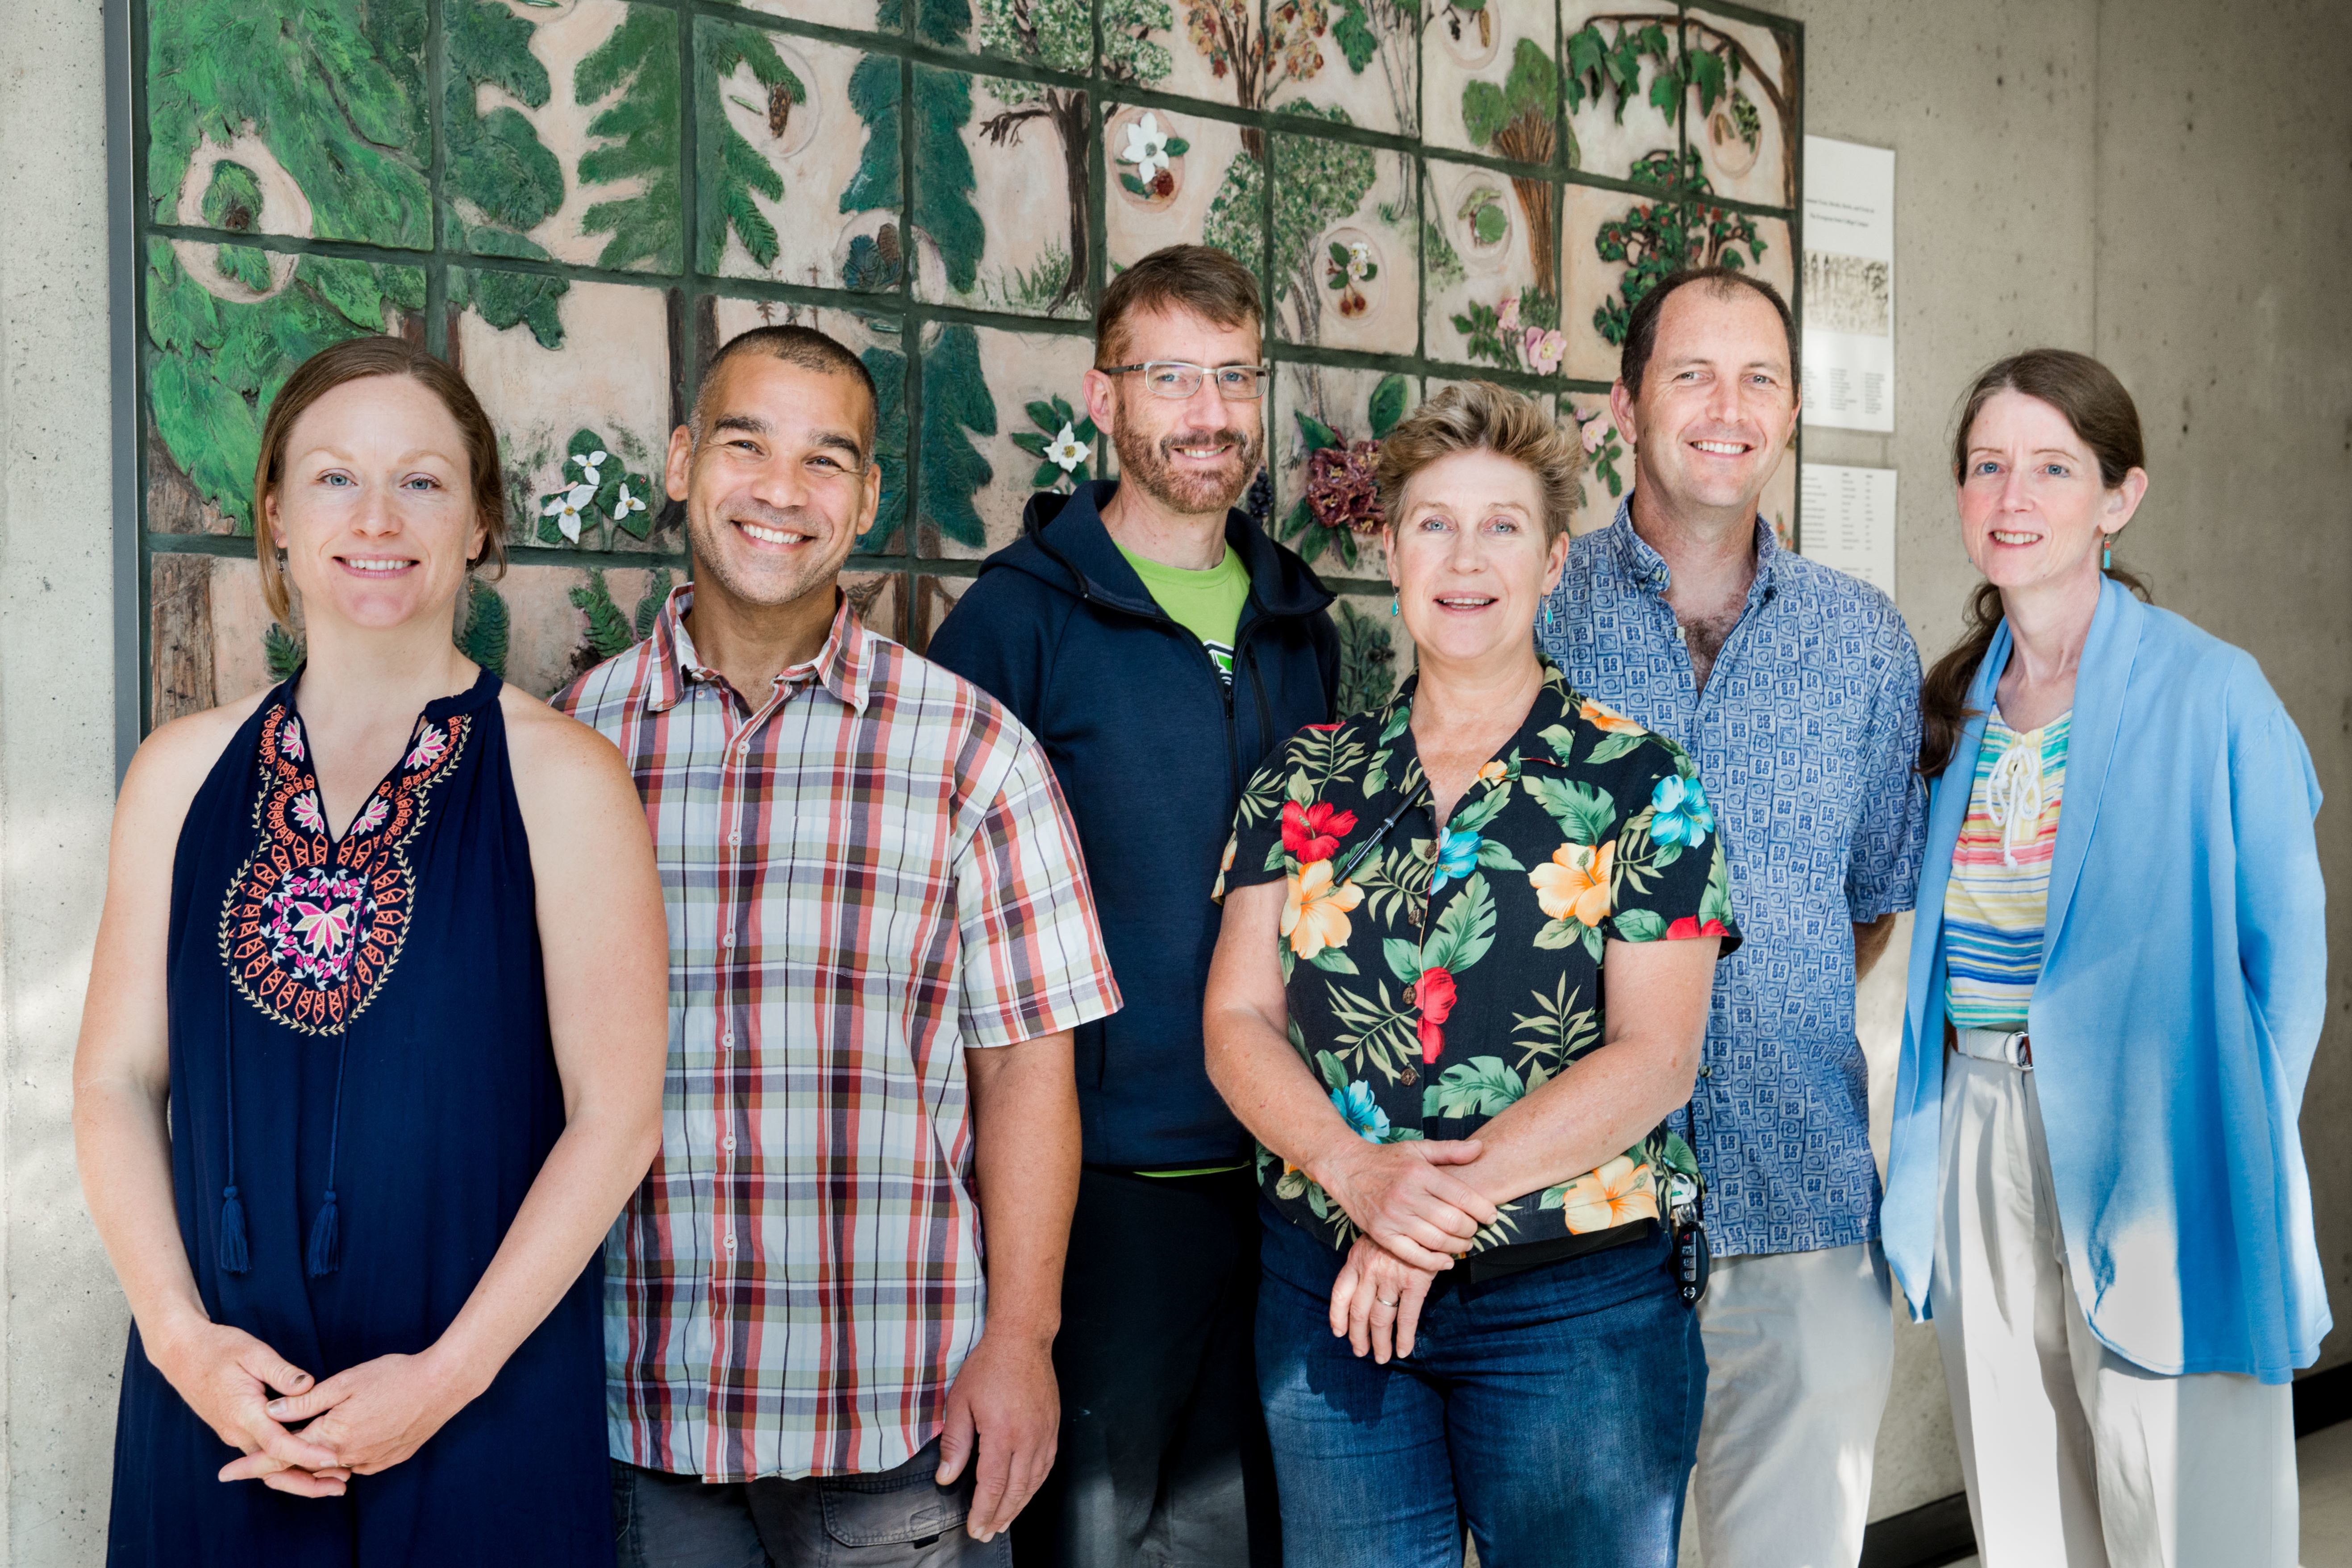 The 2018-19 MES Faculty group of Shawn Hazboun, Tyrus Smith, Kevin Francis, EJ Zita, John Withey, and Kathleen Saul